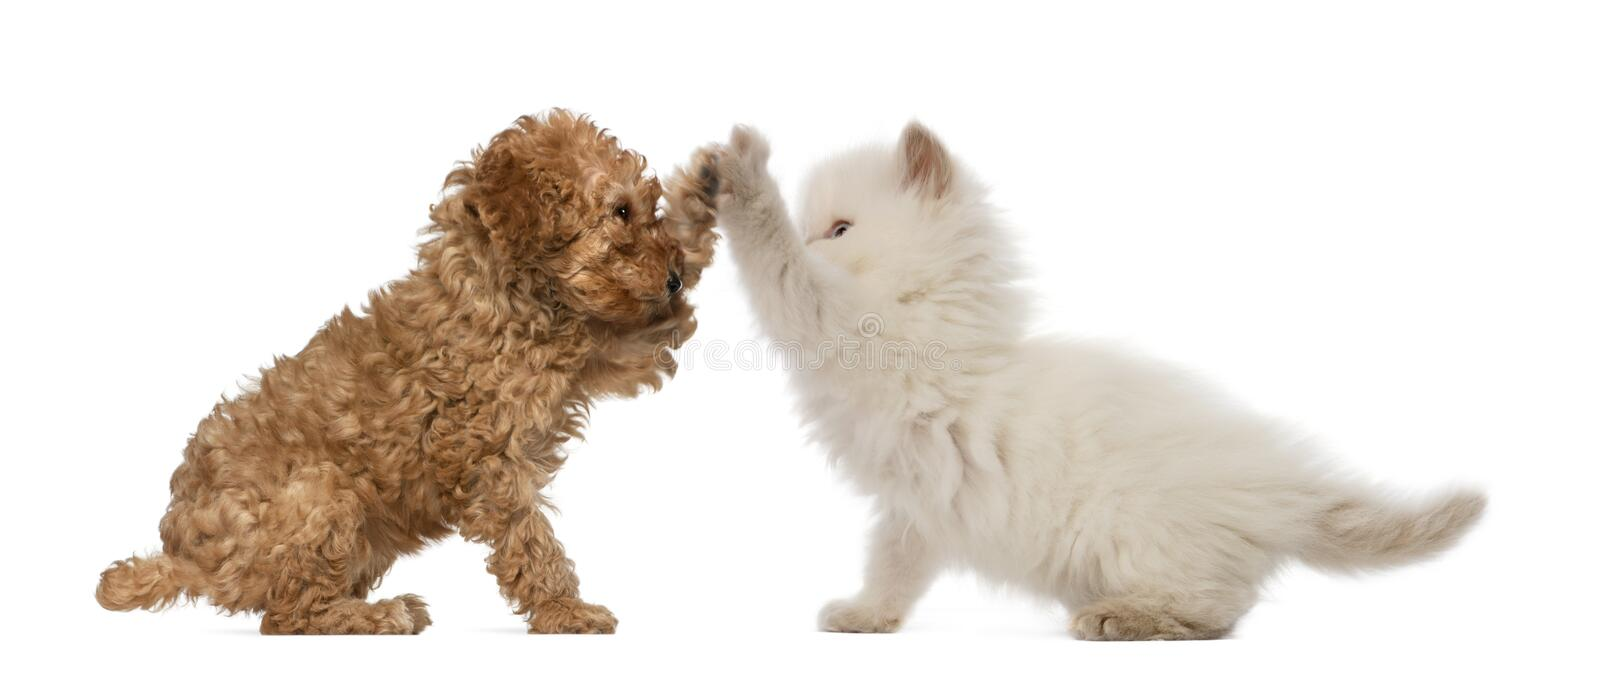 Download Poodle Puppy And British Longhair Kitten Stock Images - Image: 27419874